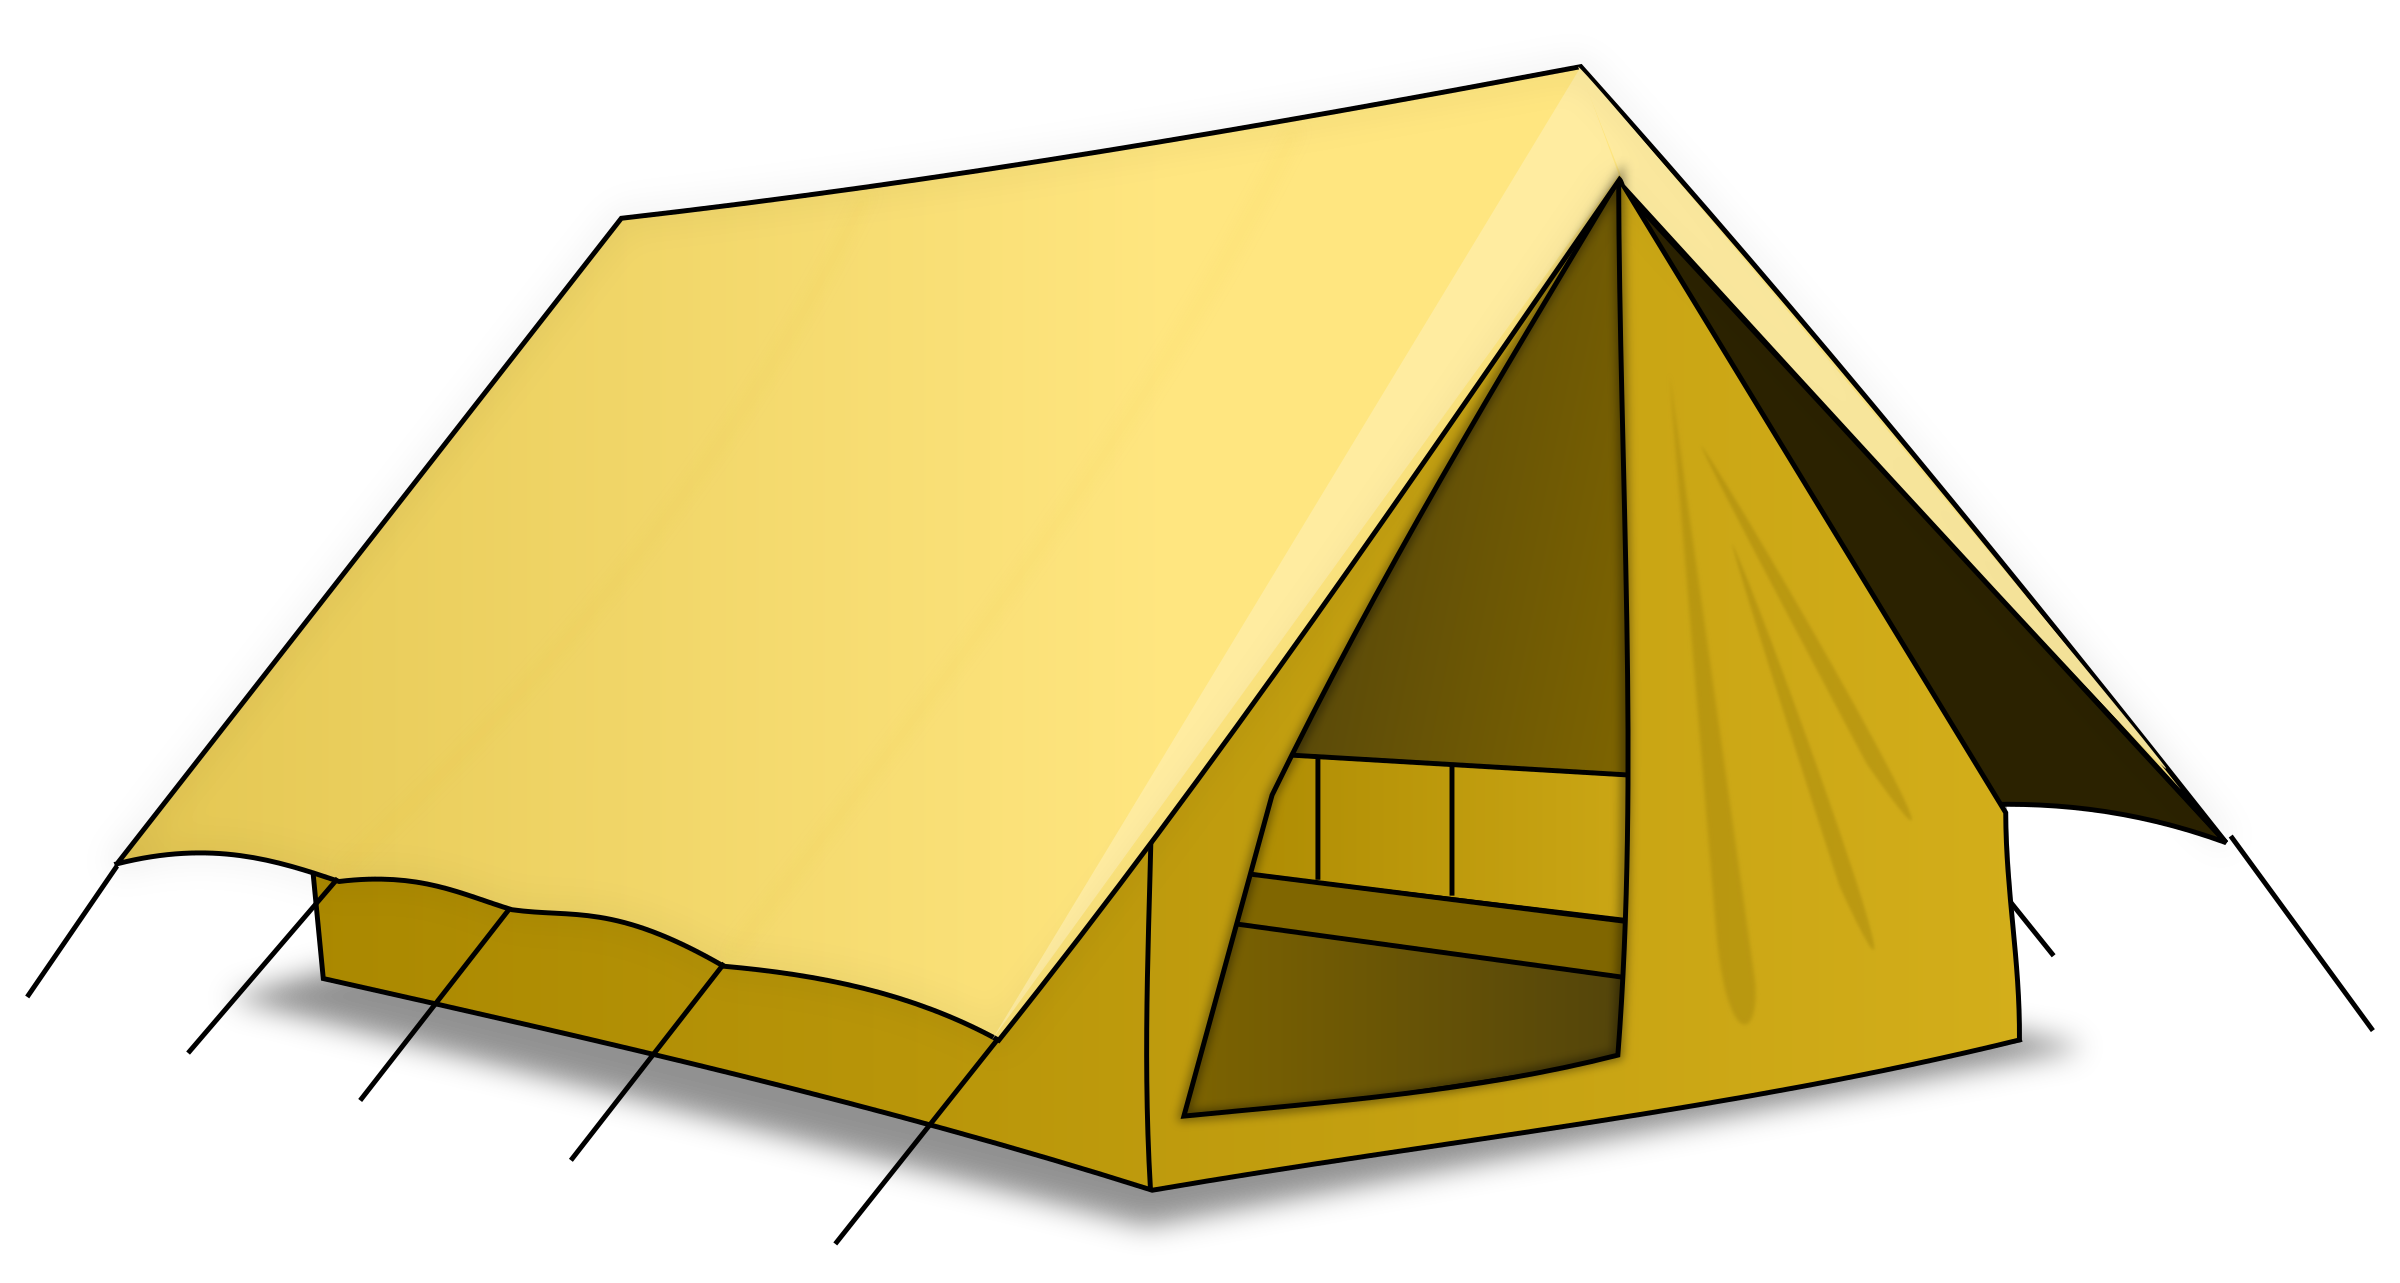 Clipart tent bedouin tent. Yellow png image purepng